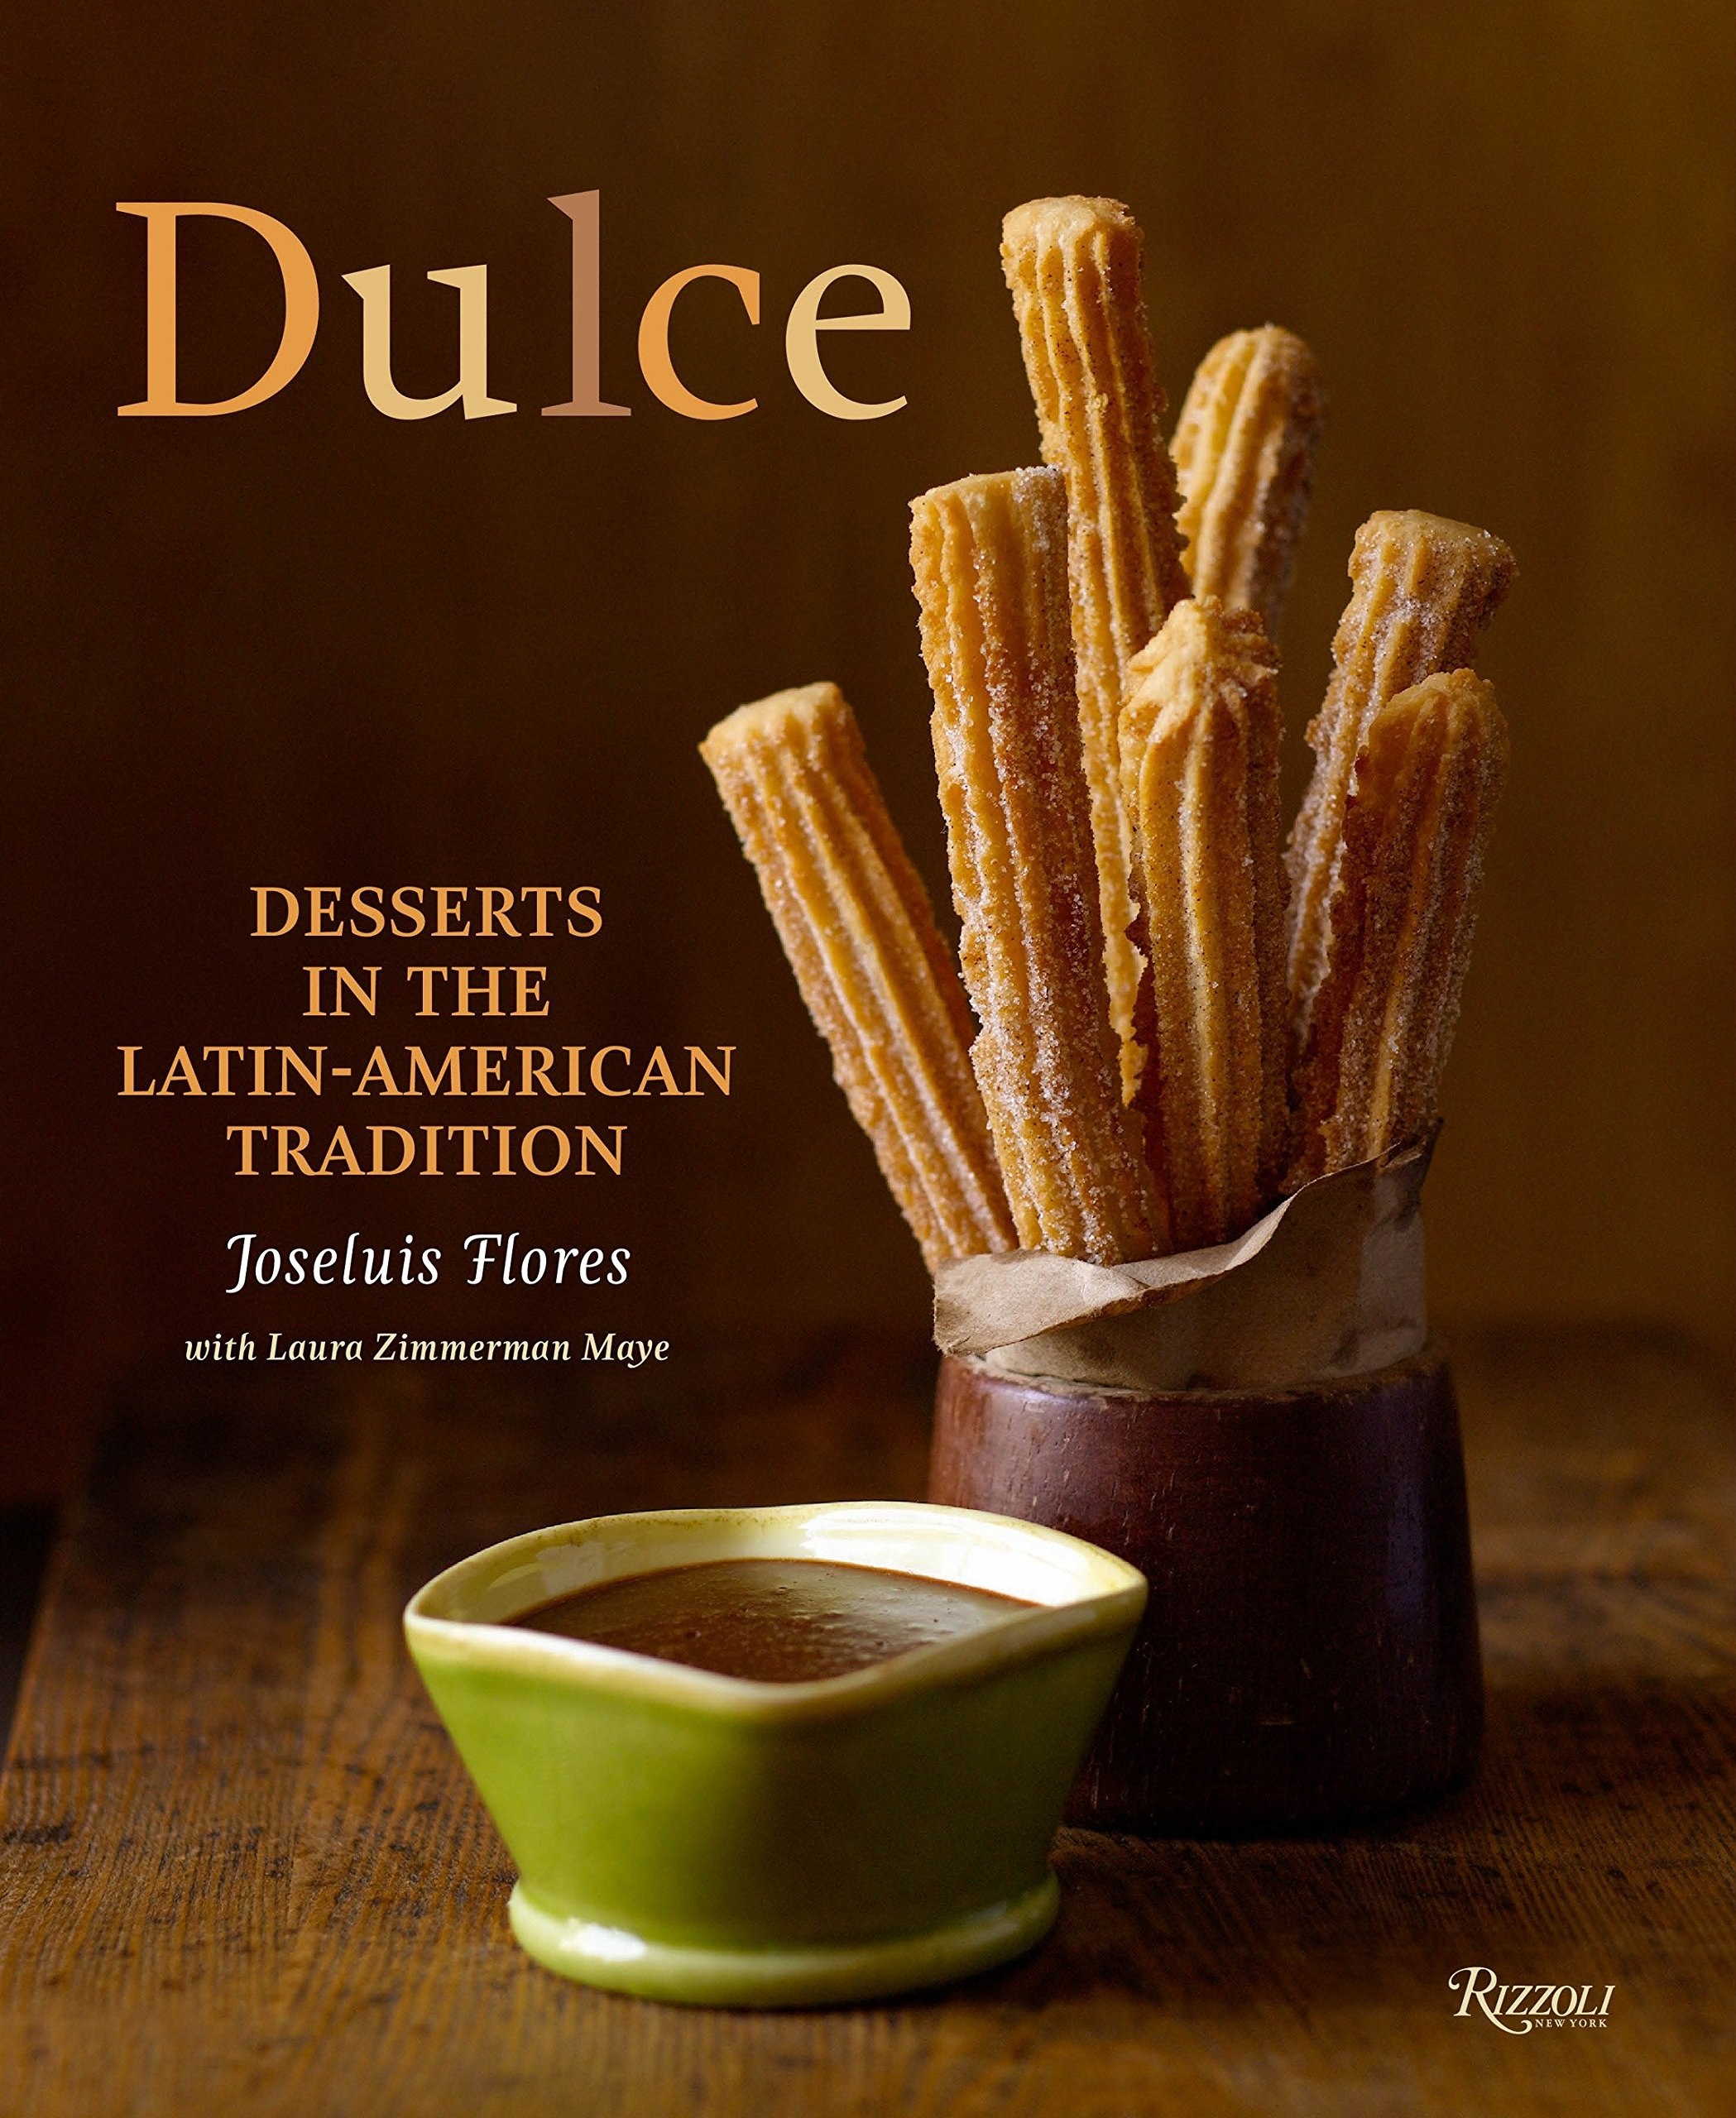 Dulce: Desserts in the Latin-American Tradition: Amazon.es: Joseluis Flores, Laura Zimmerman Maye, Ben Fink: Libros en idiomas extranjeros